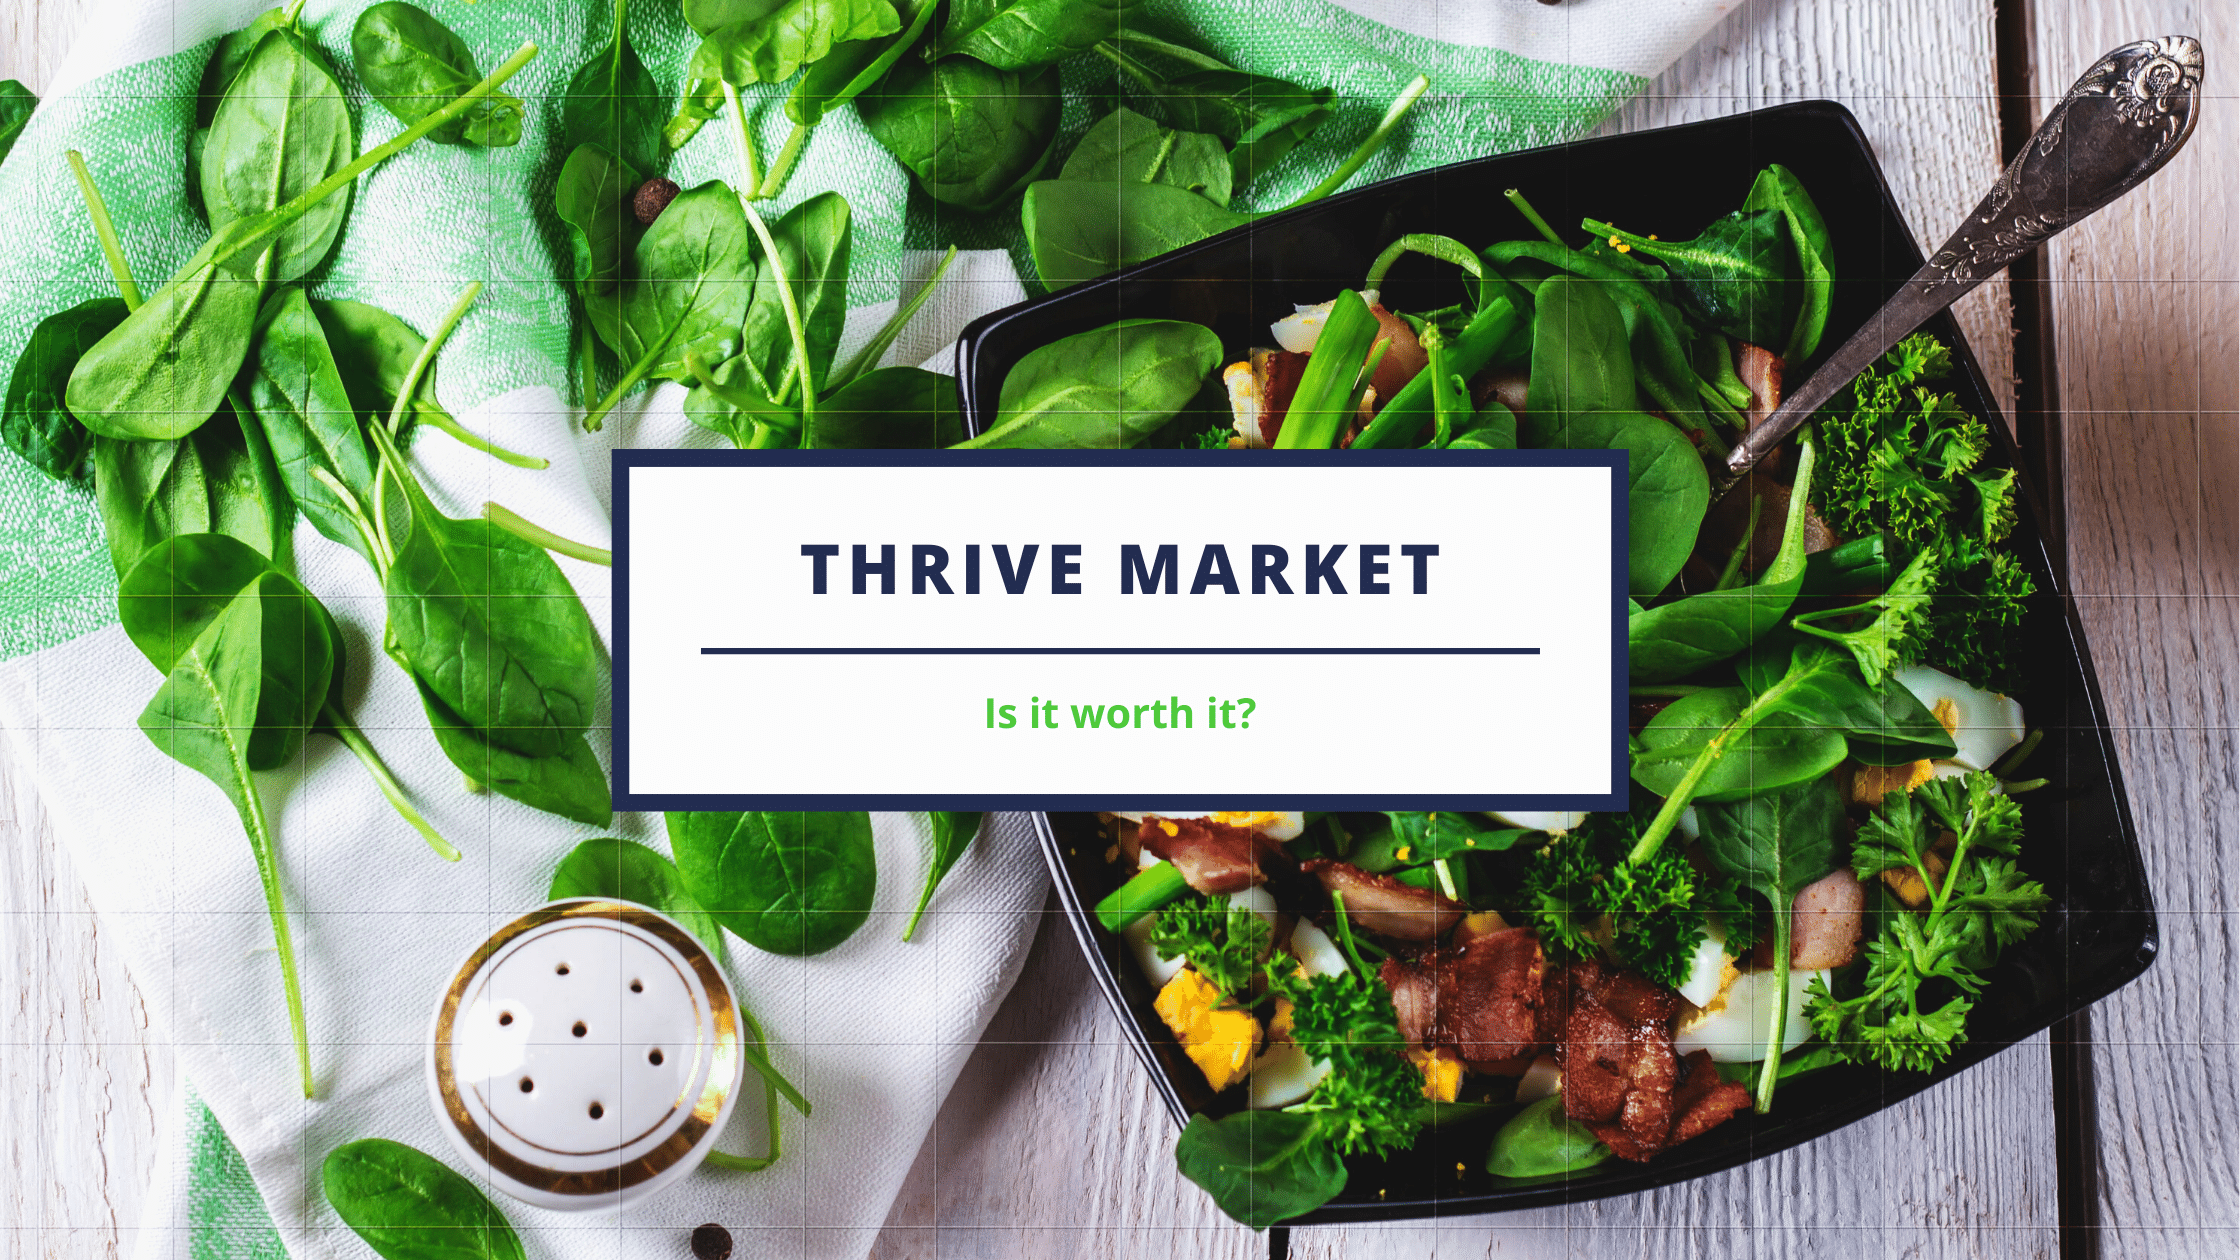 Reviews of Thrive Market